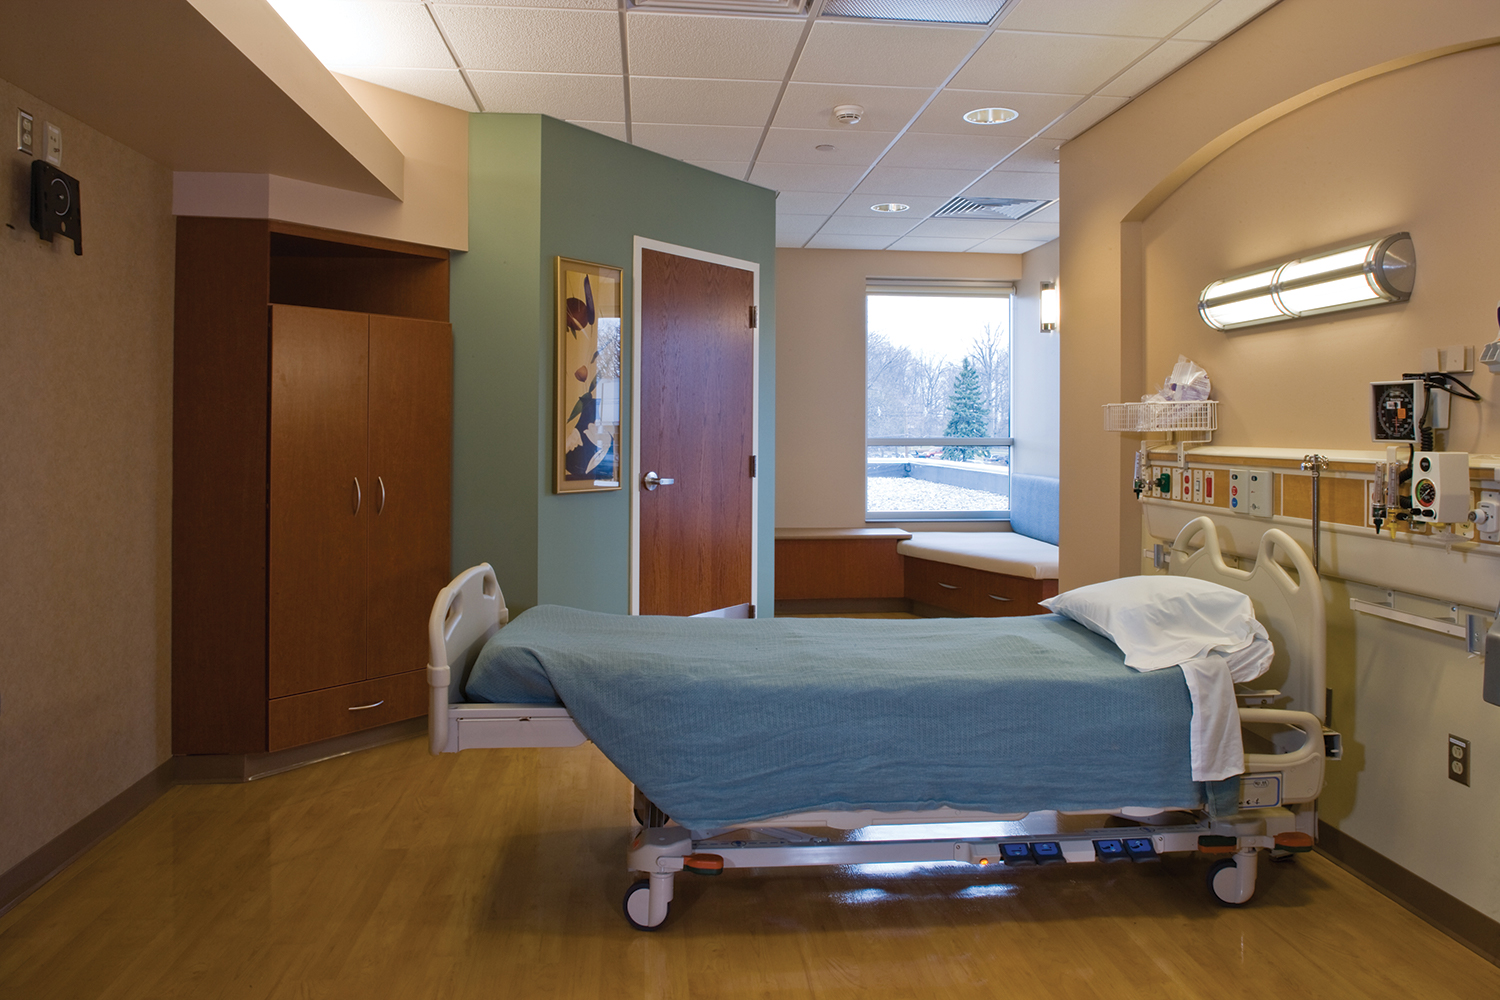 Avatar wall mounted fixture as a headwall in a patient room for sophisticated hospital lighting design.